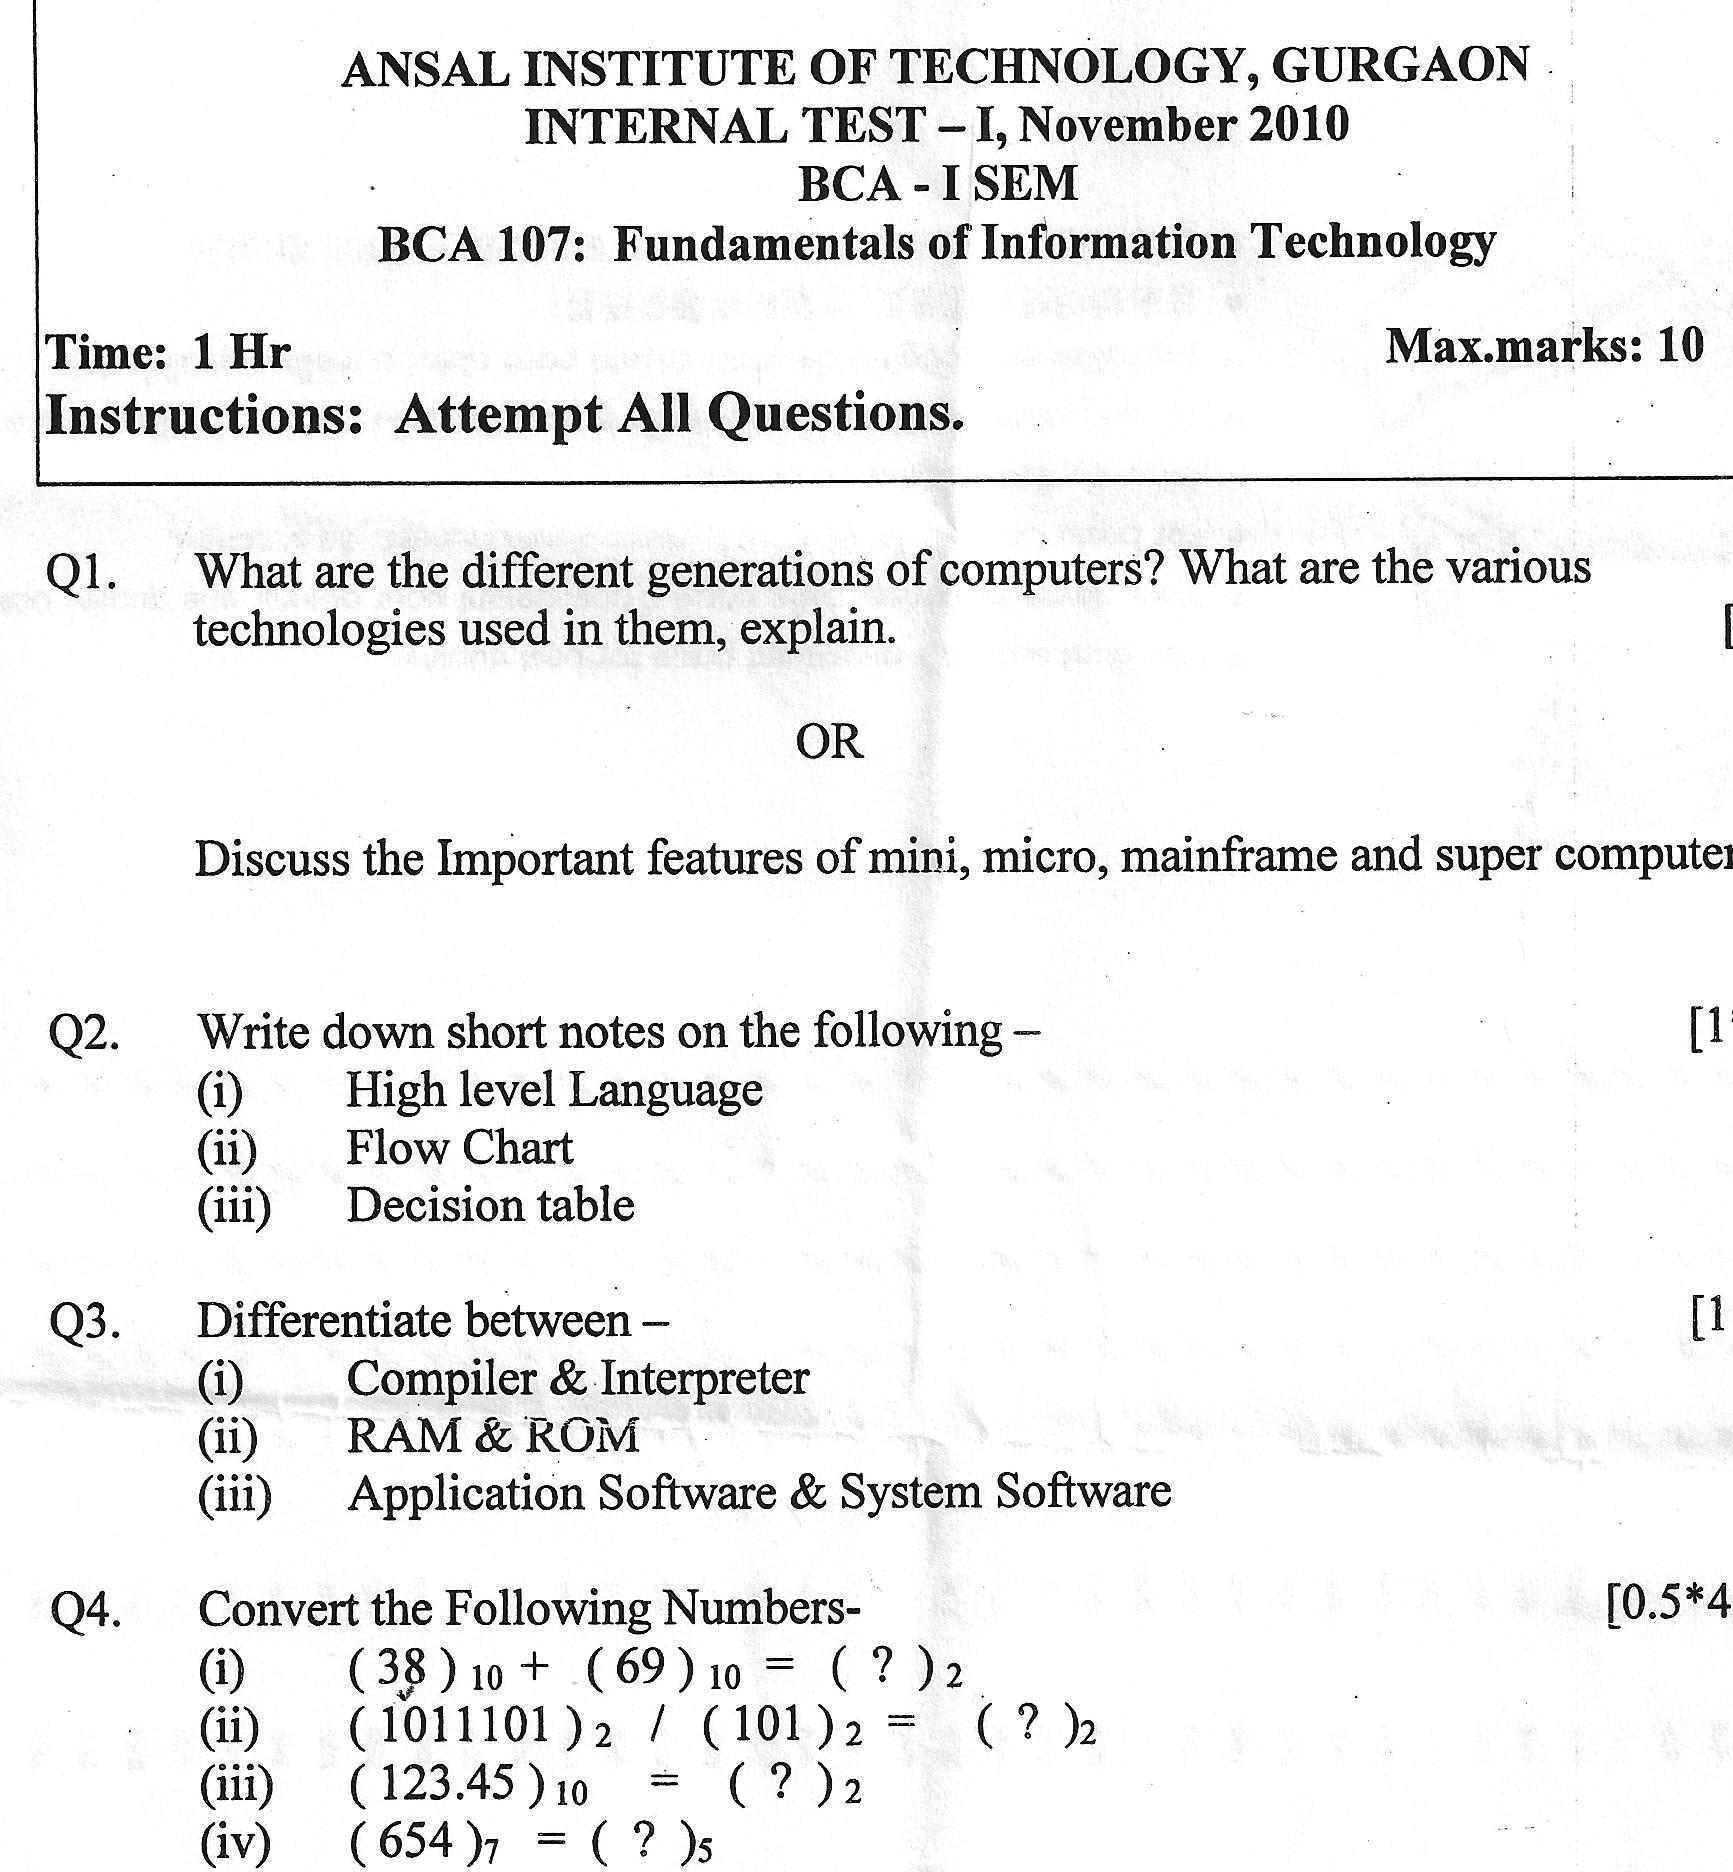 information technology test Computer & information technology 11200 waiver exam test out of cit 11200 students who are proficient in computer hardware, software, networking, security, the internet, and applications may choose to take the waiver exam for cit 11200, information technology fundamentals.